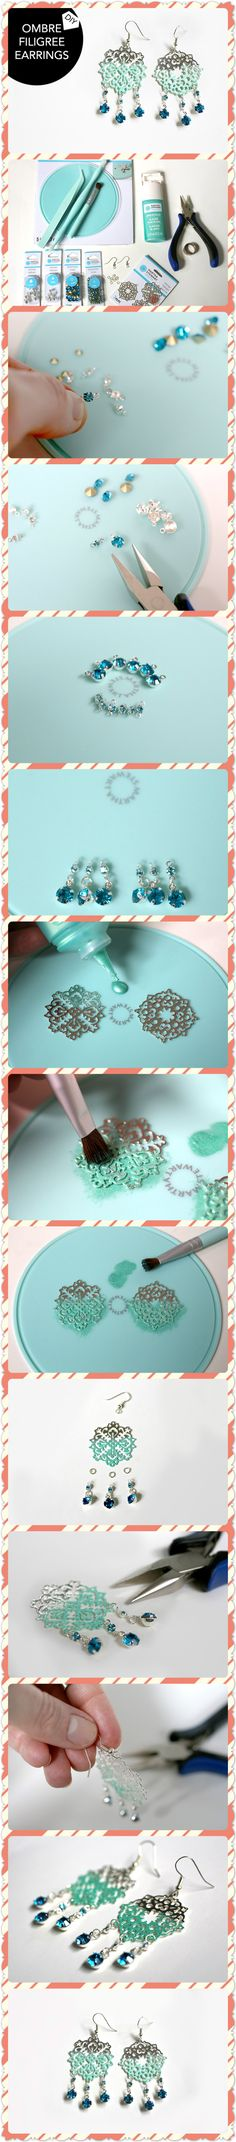 DIY OMBRE FILIGREE EARRINGS diy crafts home made easy crafts craft idea crafts…